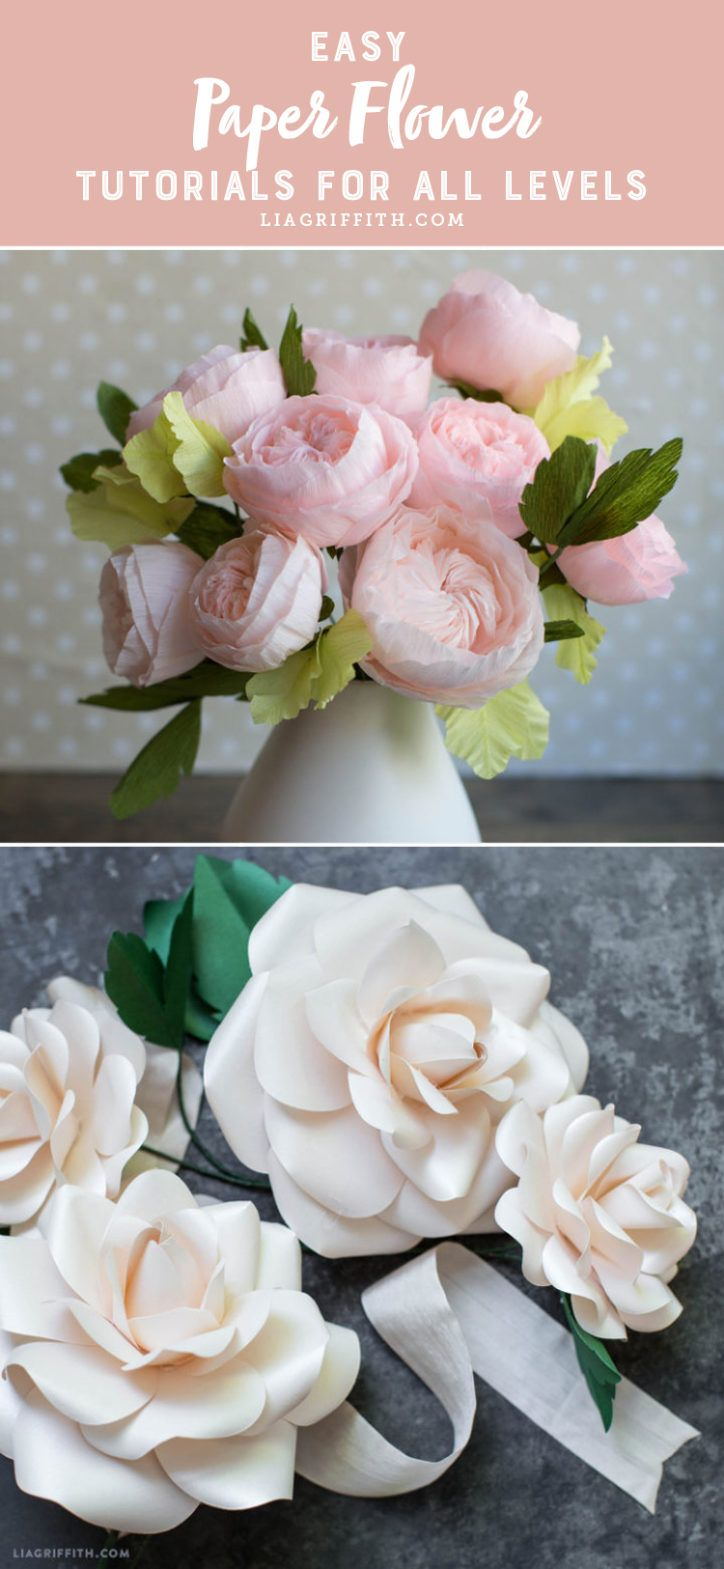 Showered in Flowers Splendid news crafters! We have carefully selected 10 of our favorite paper flower tutorial videos for you to craft along with. Take a look at our selections and let spring begin!